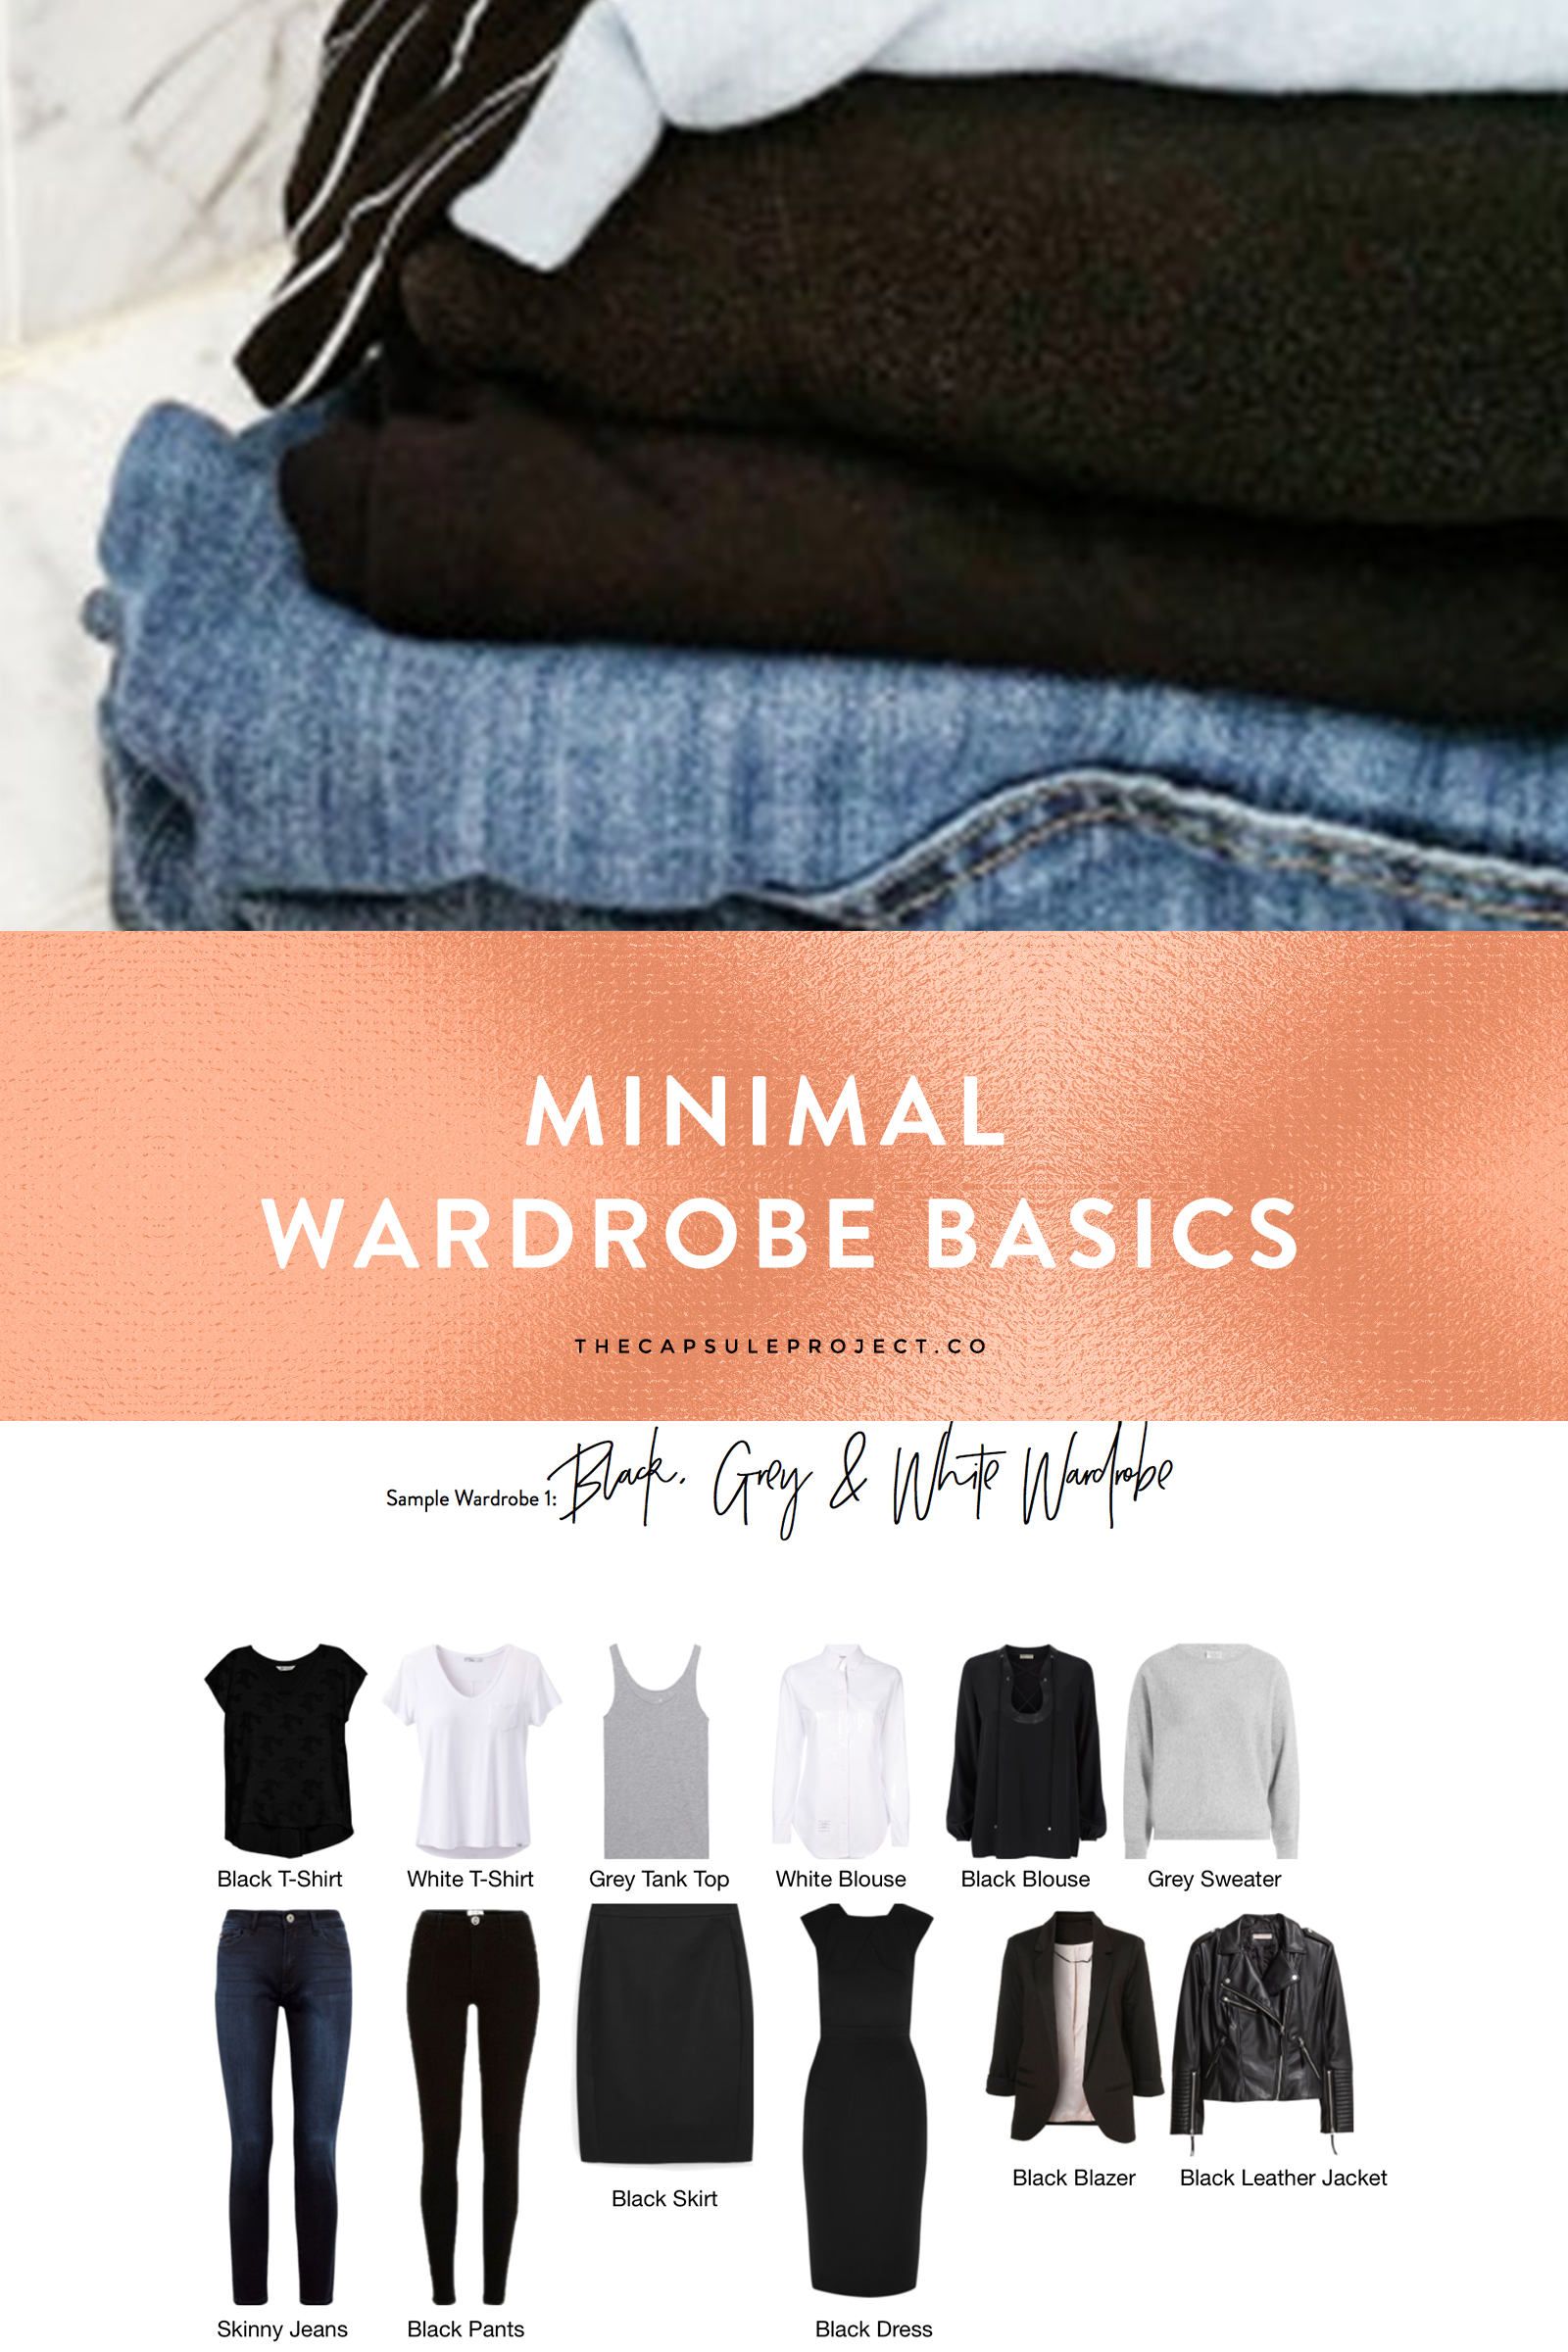 Minimal Wardrobe Basics in black, white, and grey